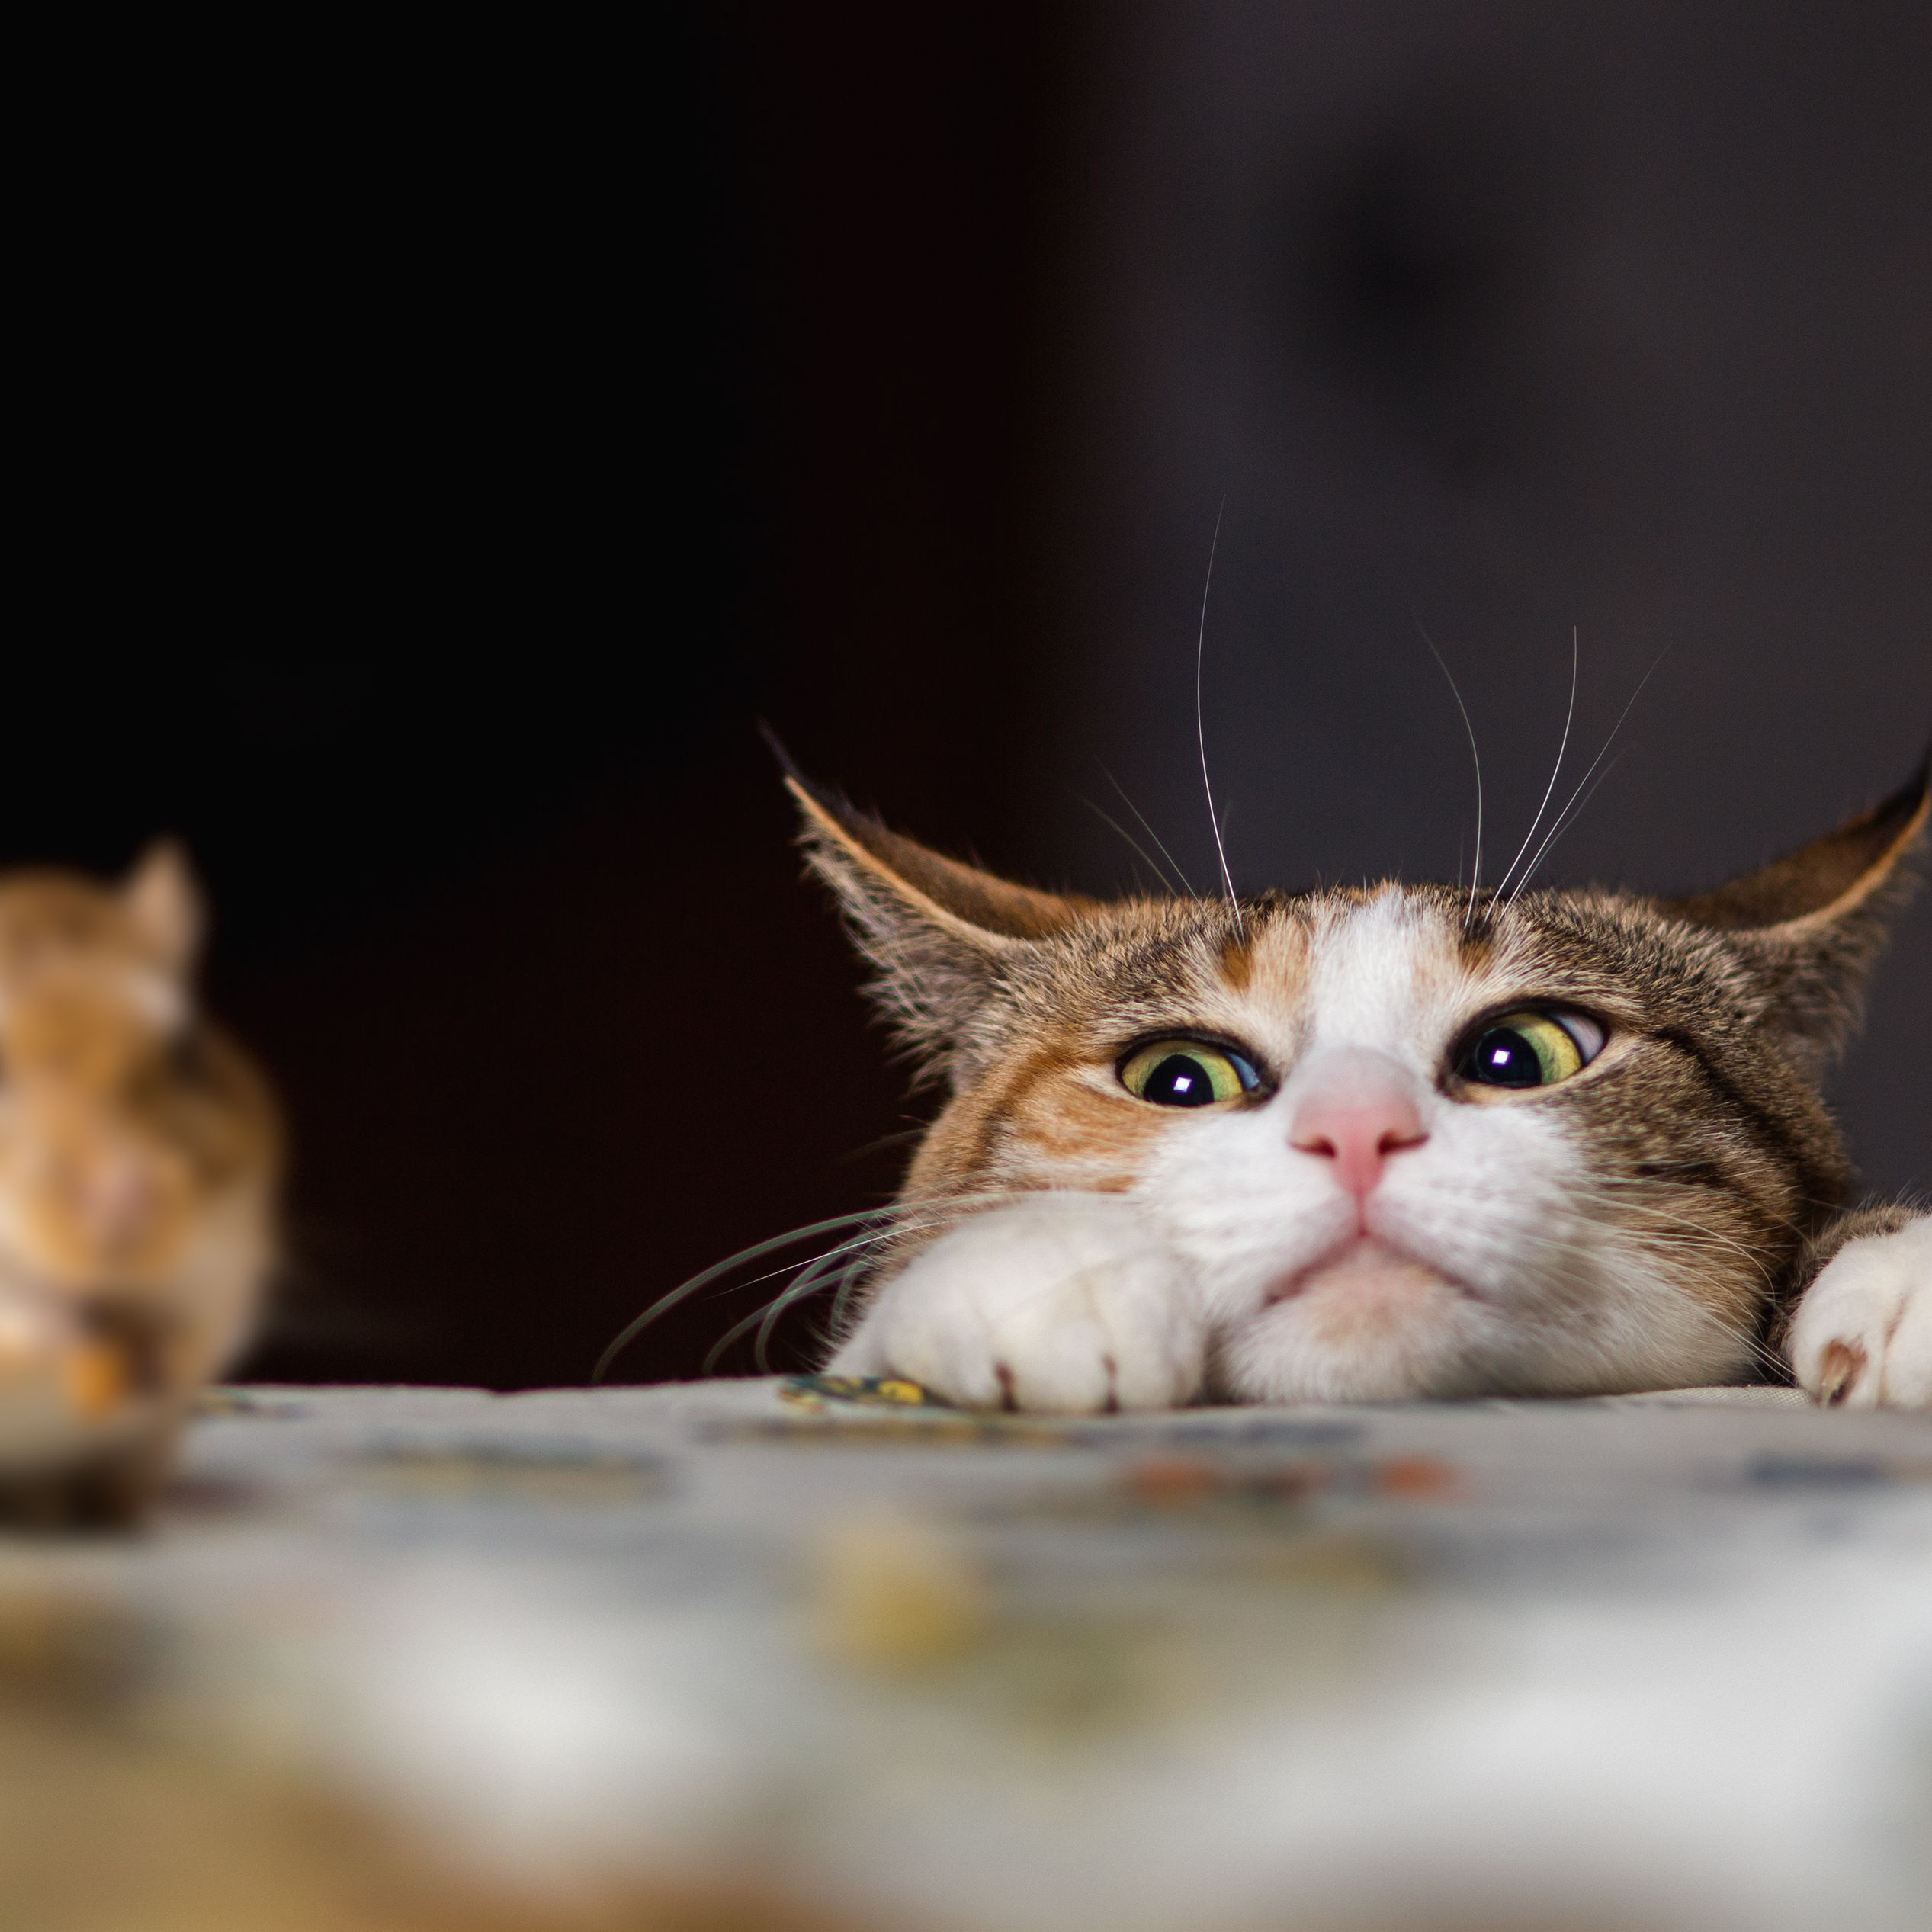 Cats and Mice: Potential for Disease and Other Dangers